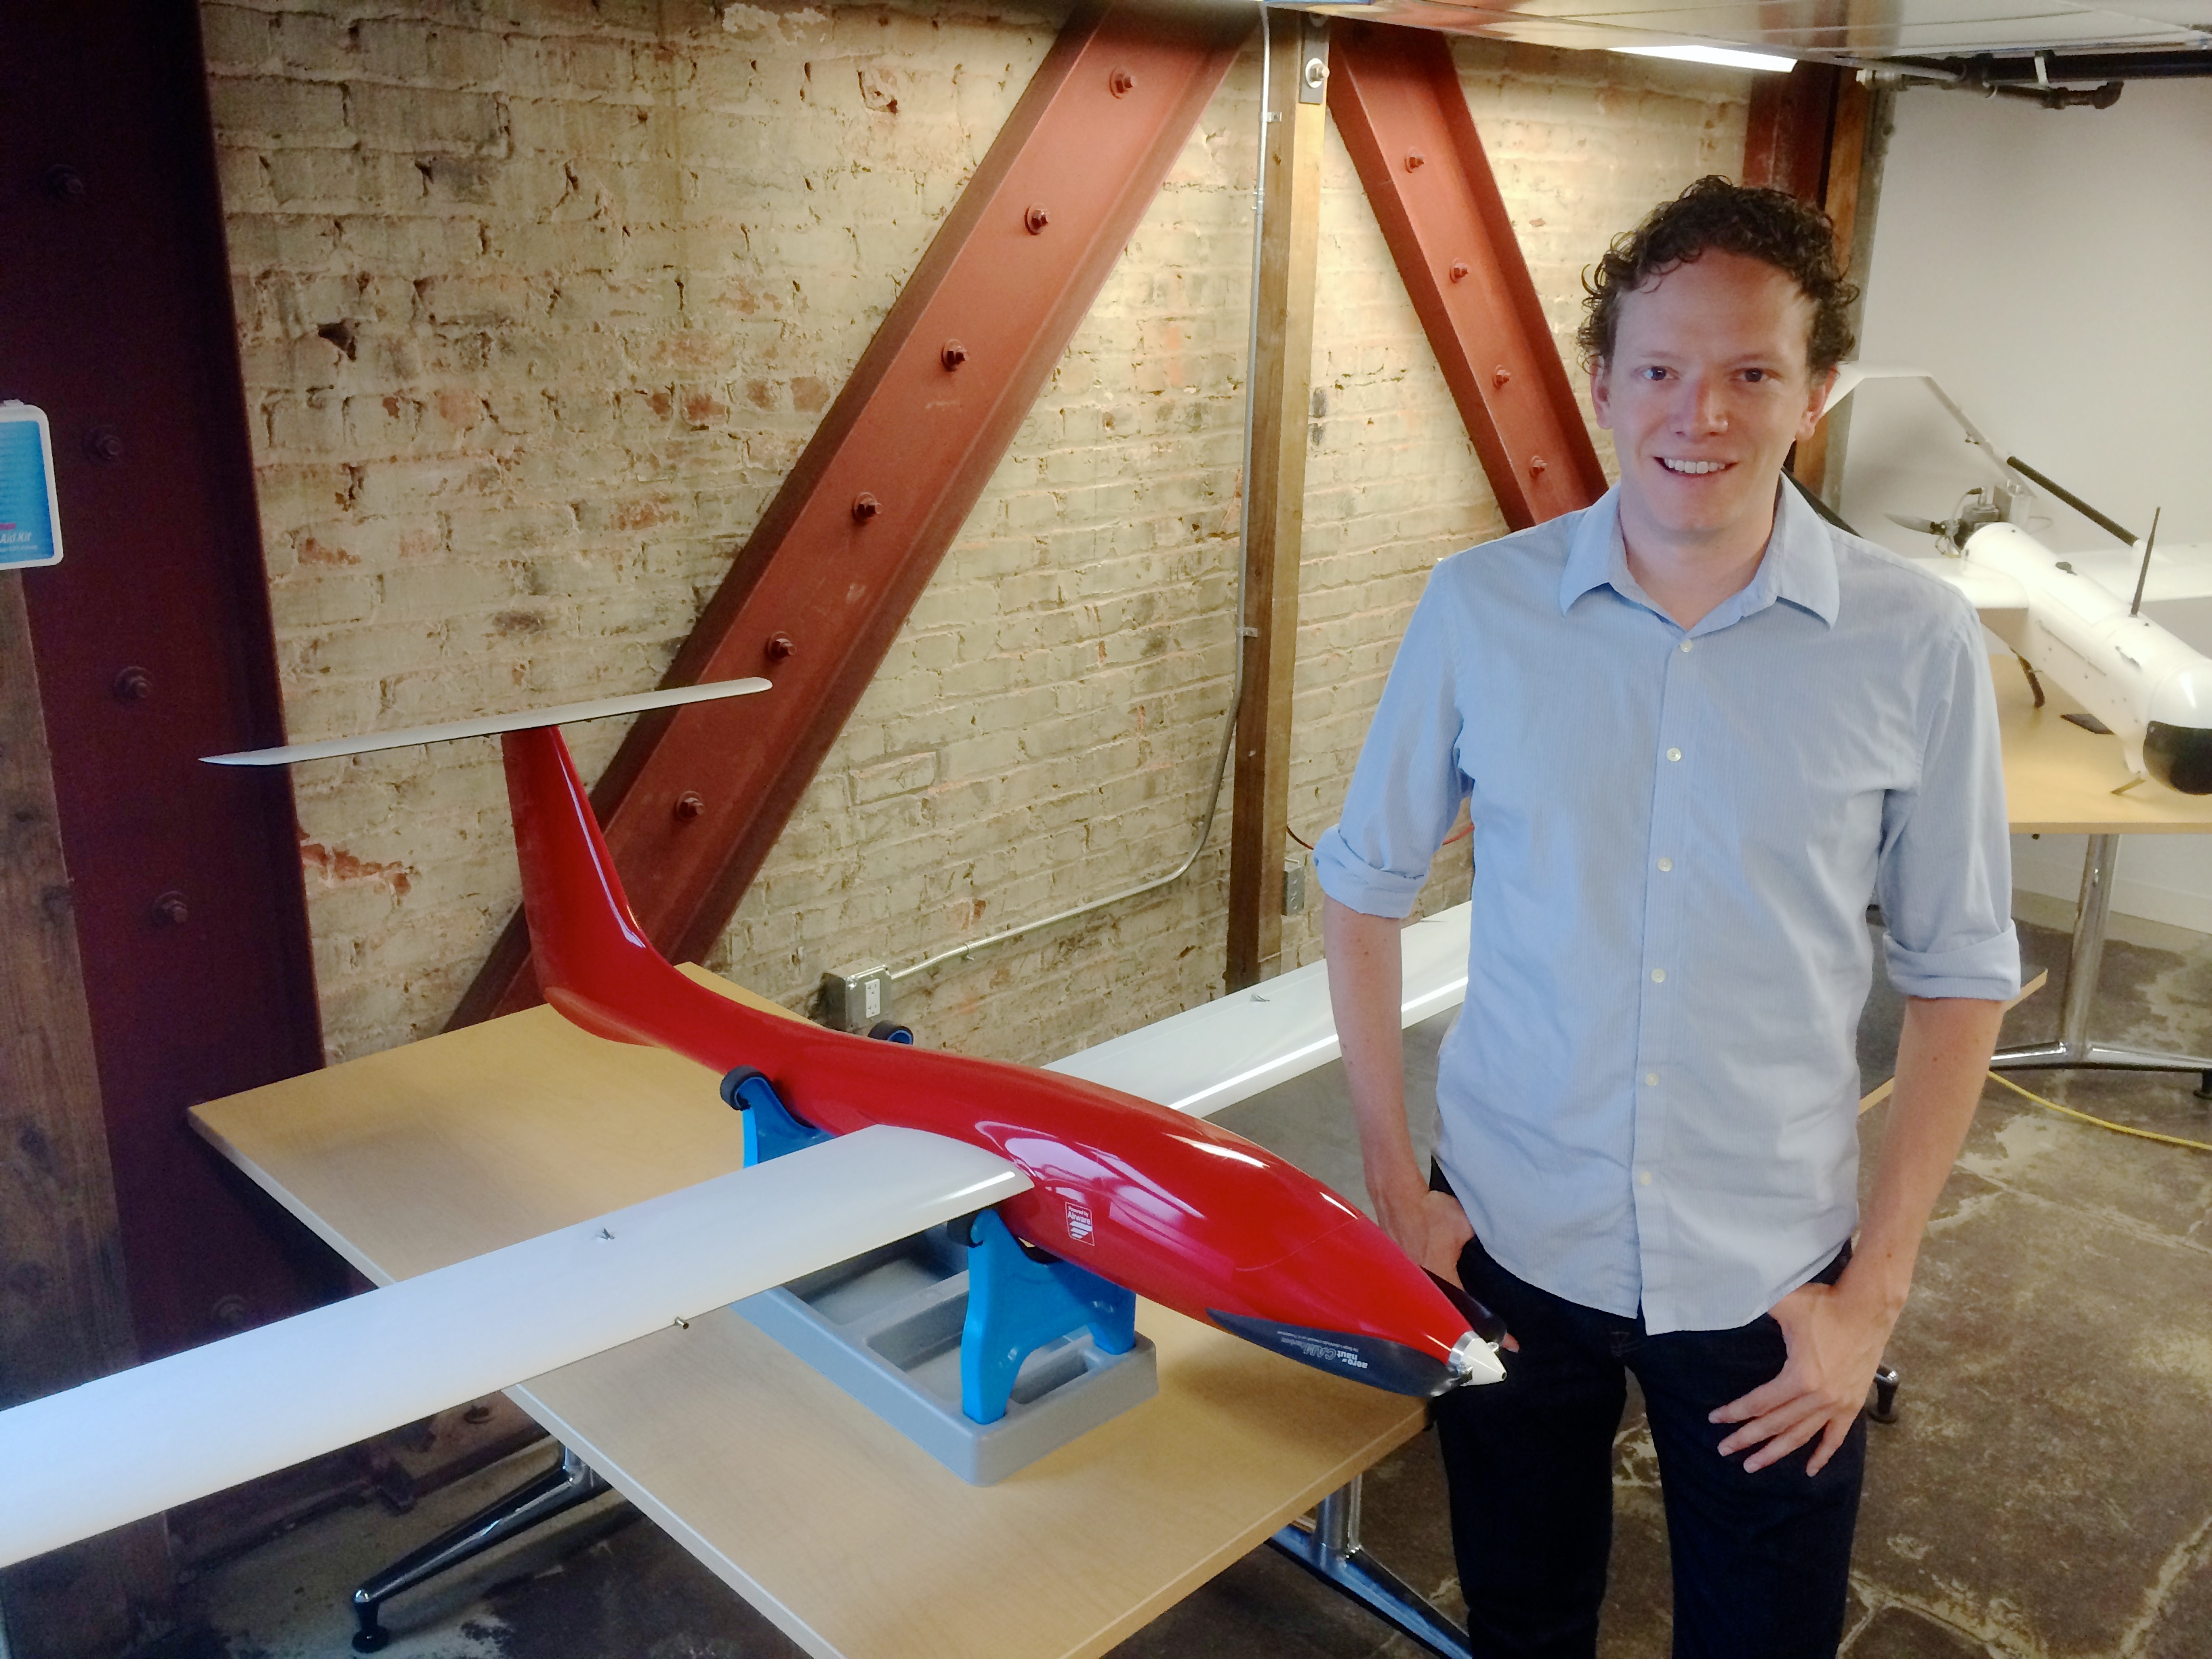 Airware founder and CEO Jonathan Downey with an Airware-equipped drone. Photo by Signe Brewster.